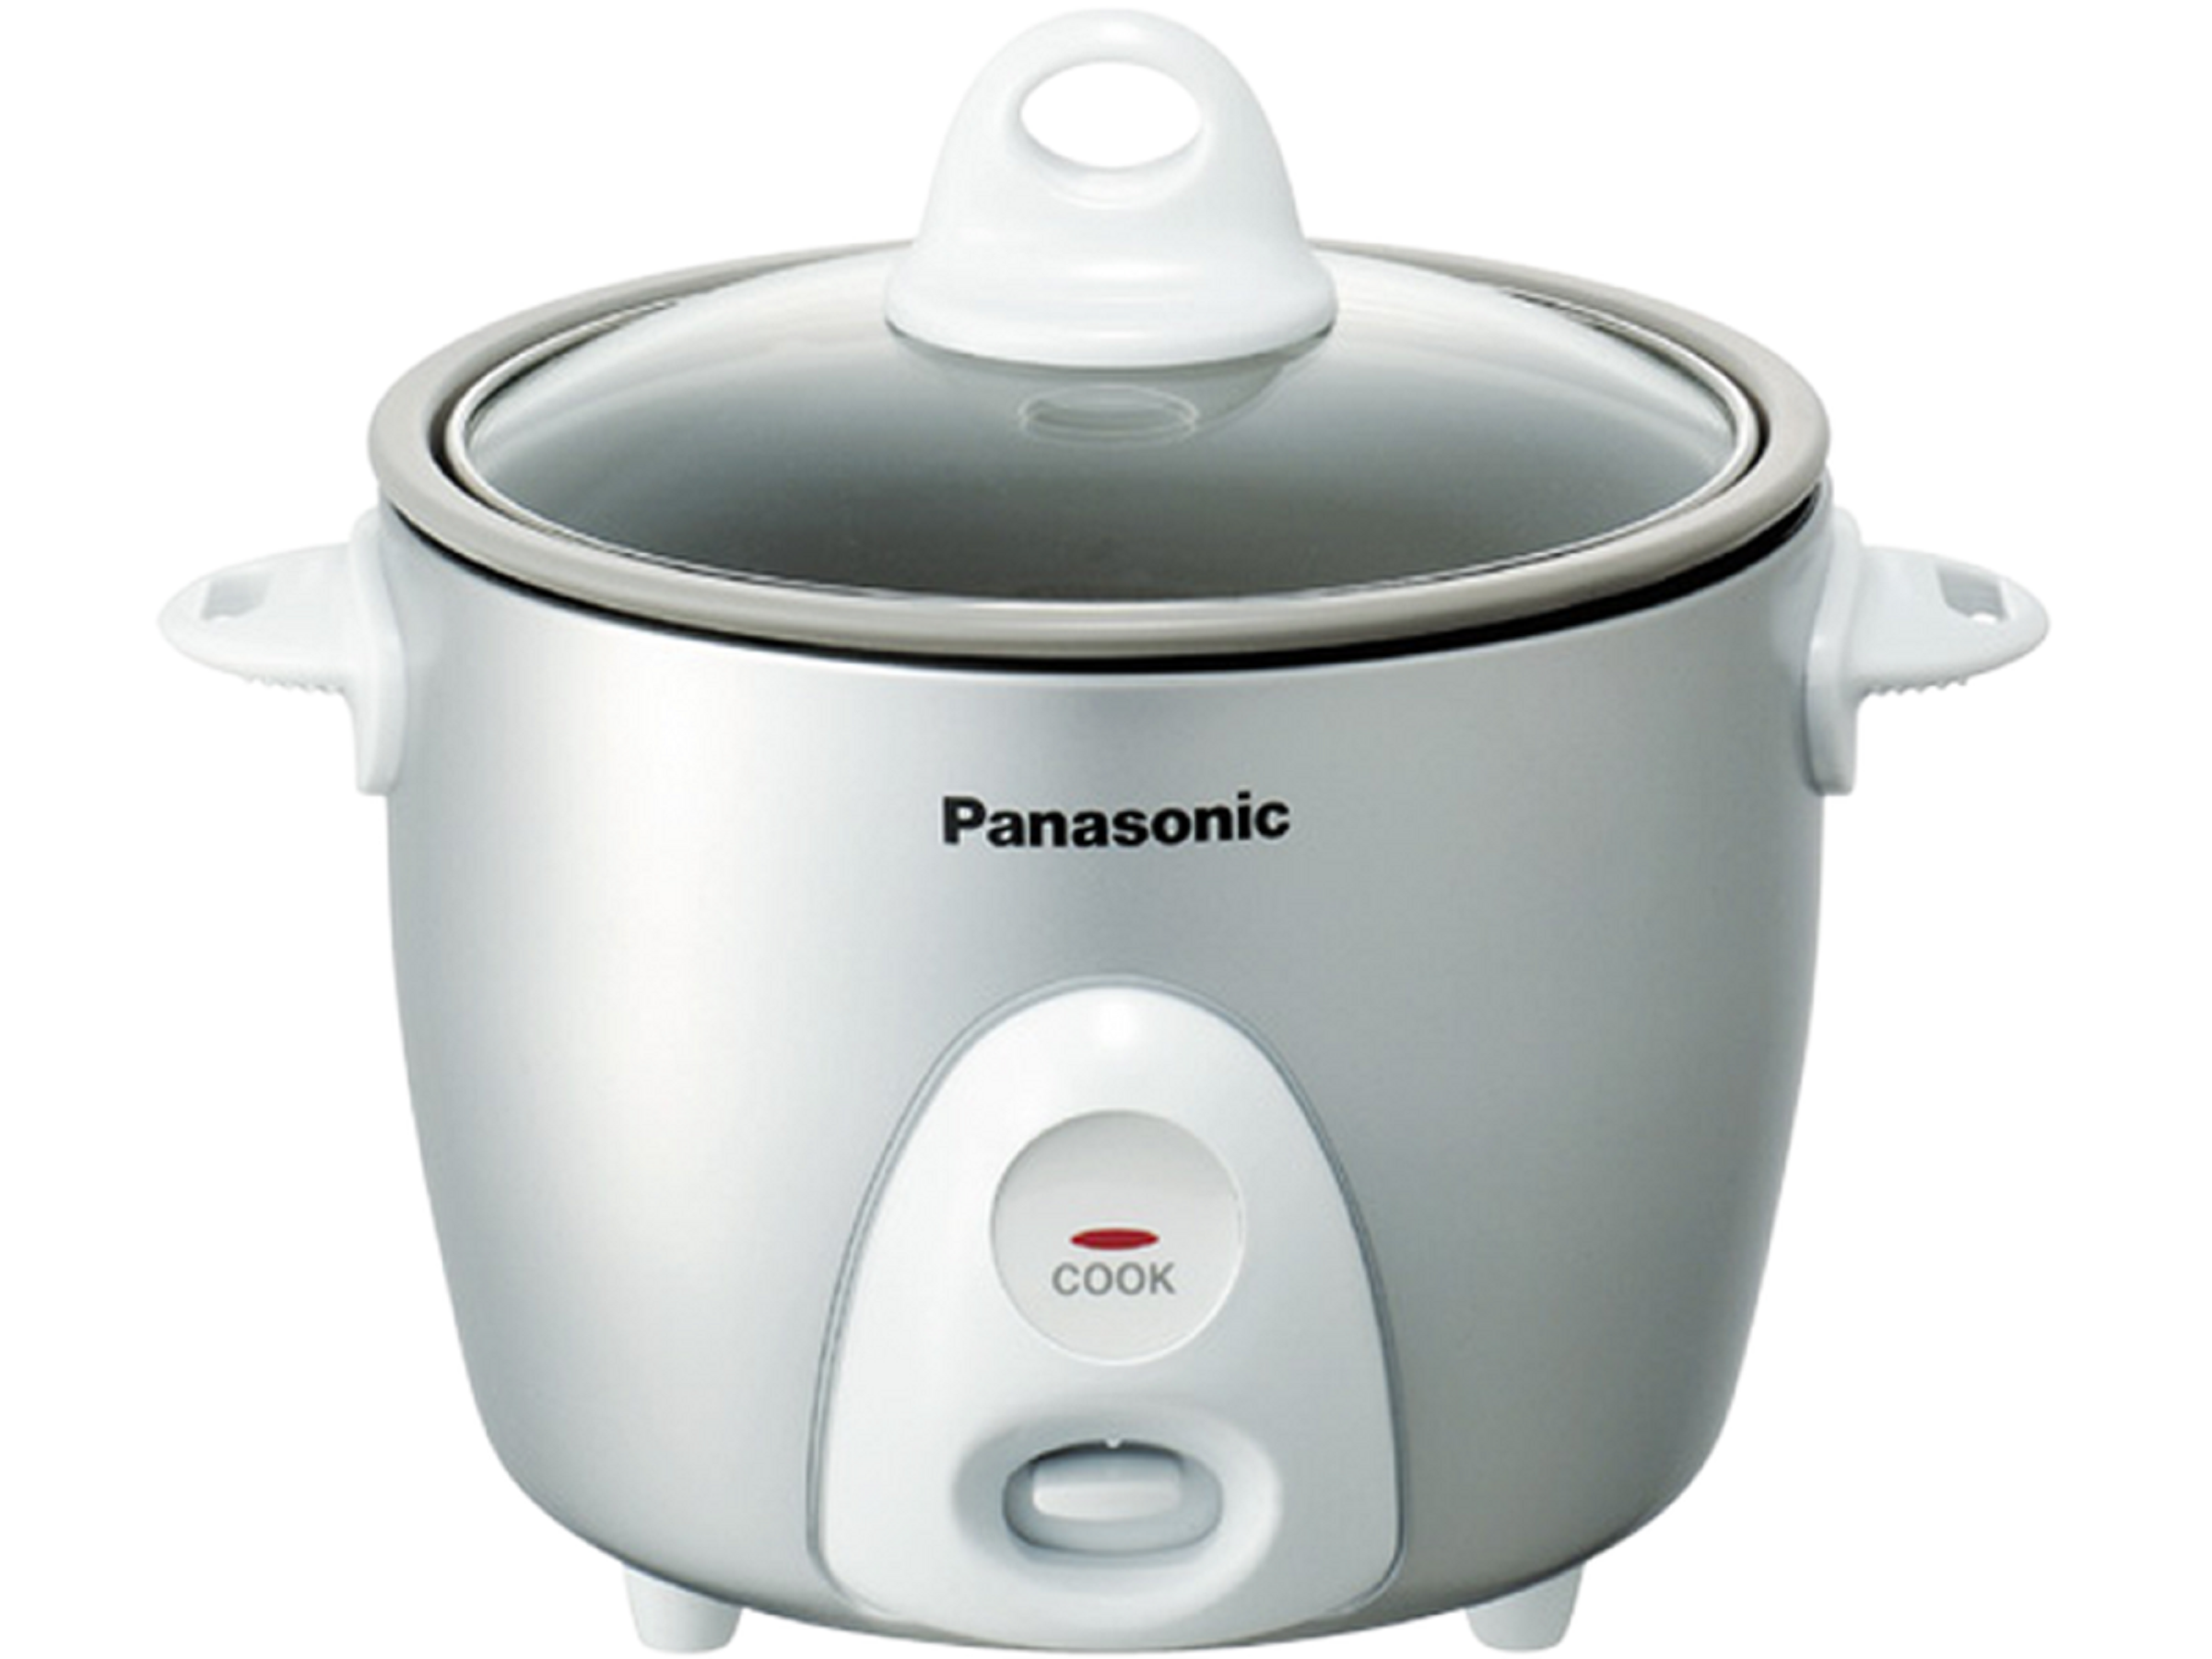 Mini Rice Cooker, 1.5 cup rice cooker